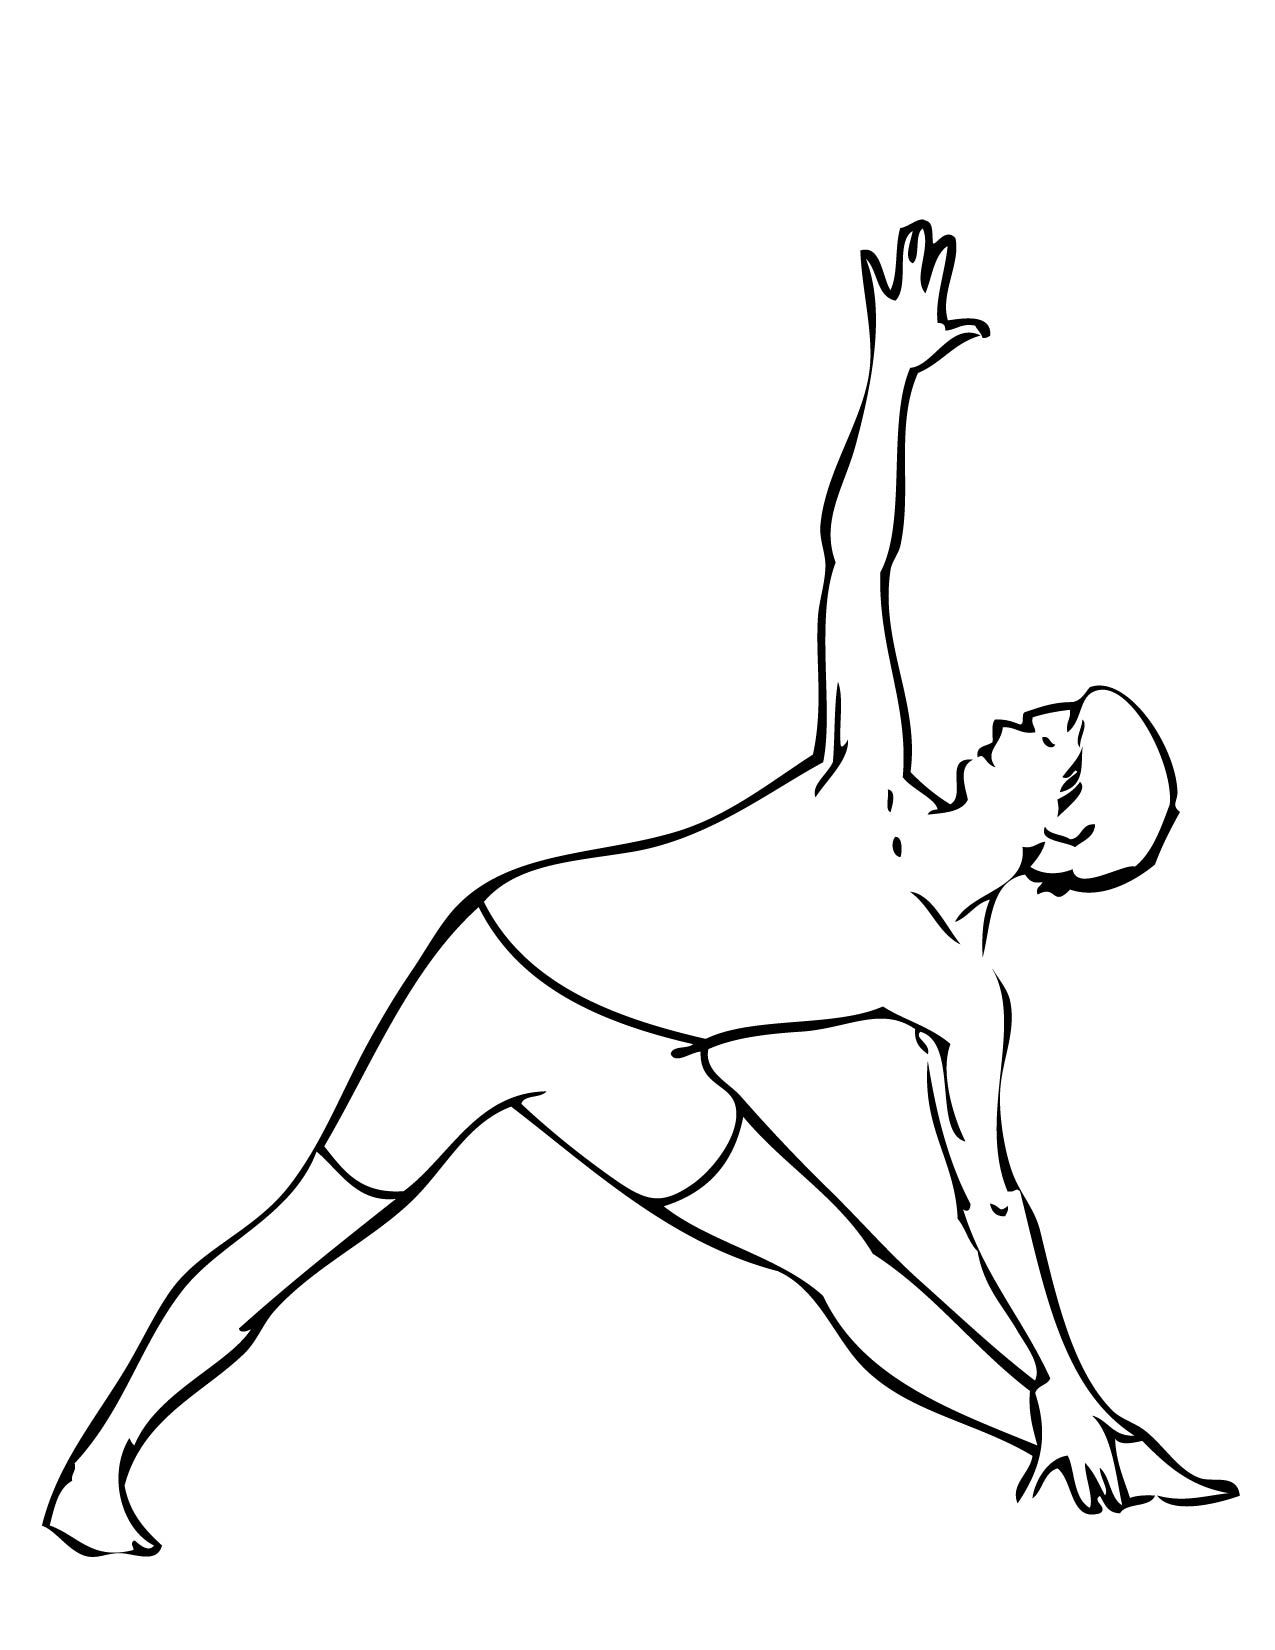 Epic image intended for printable yoga worksheets